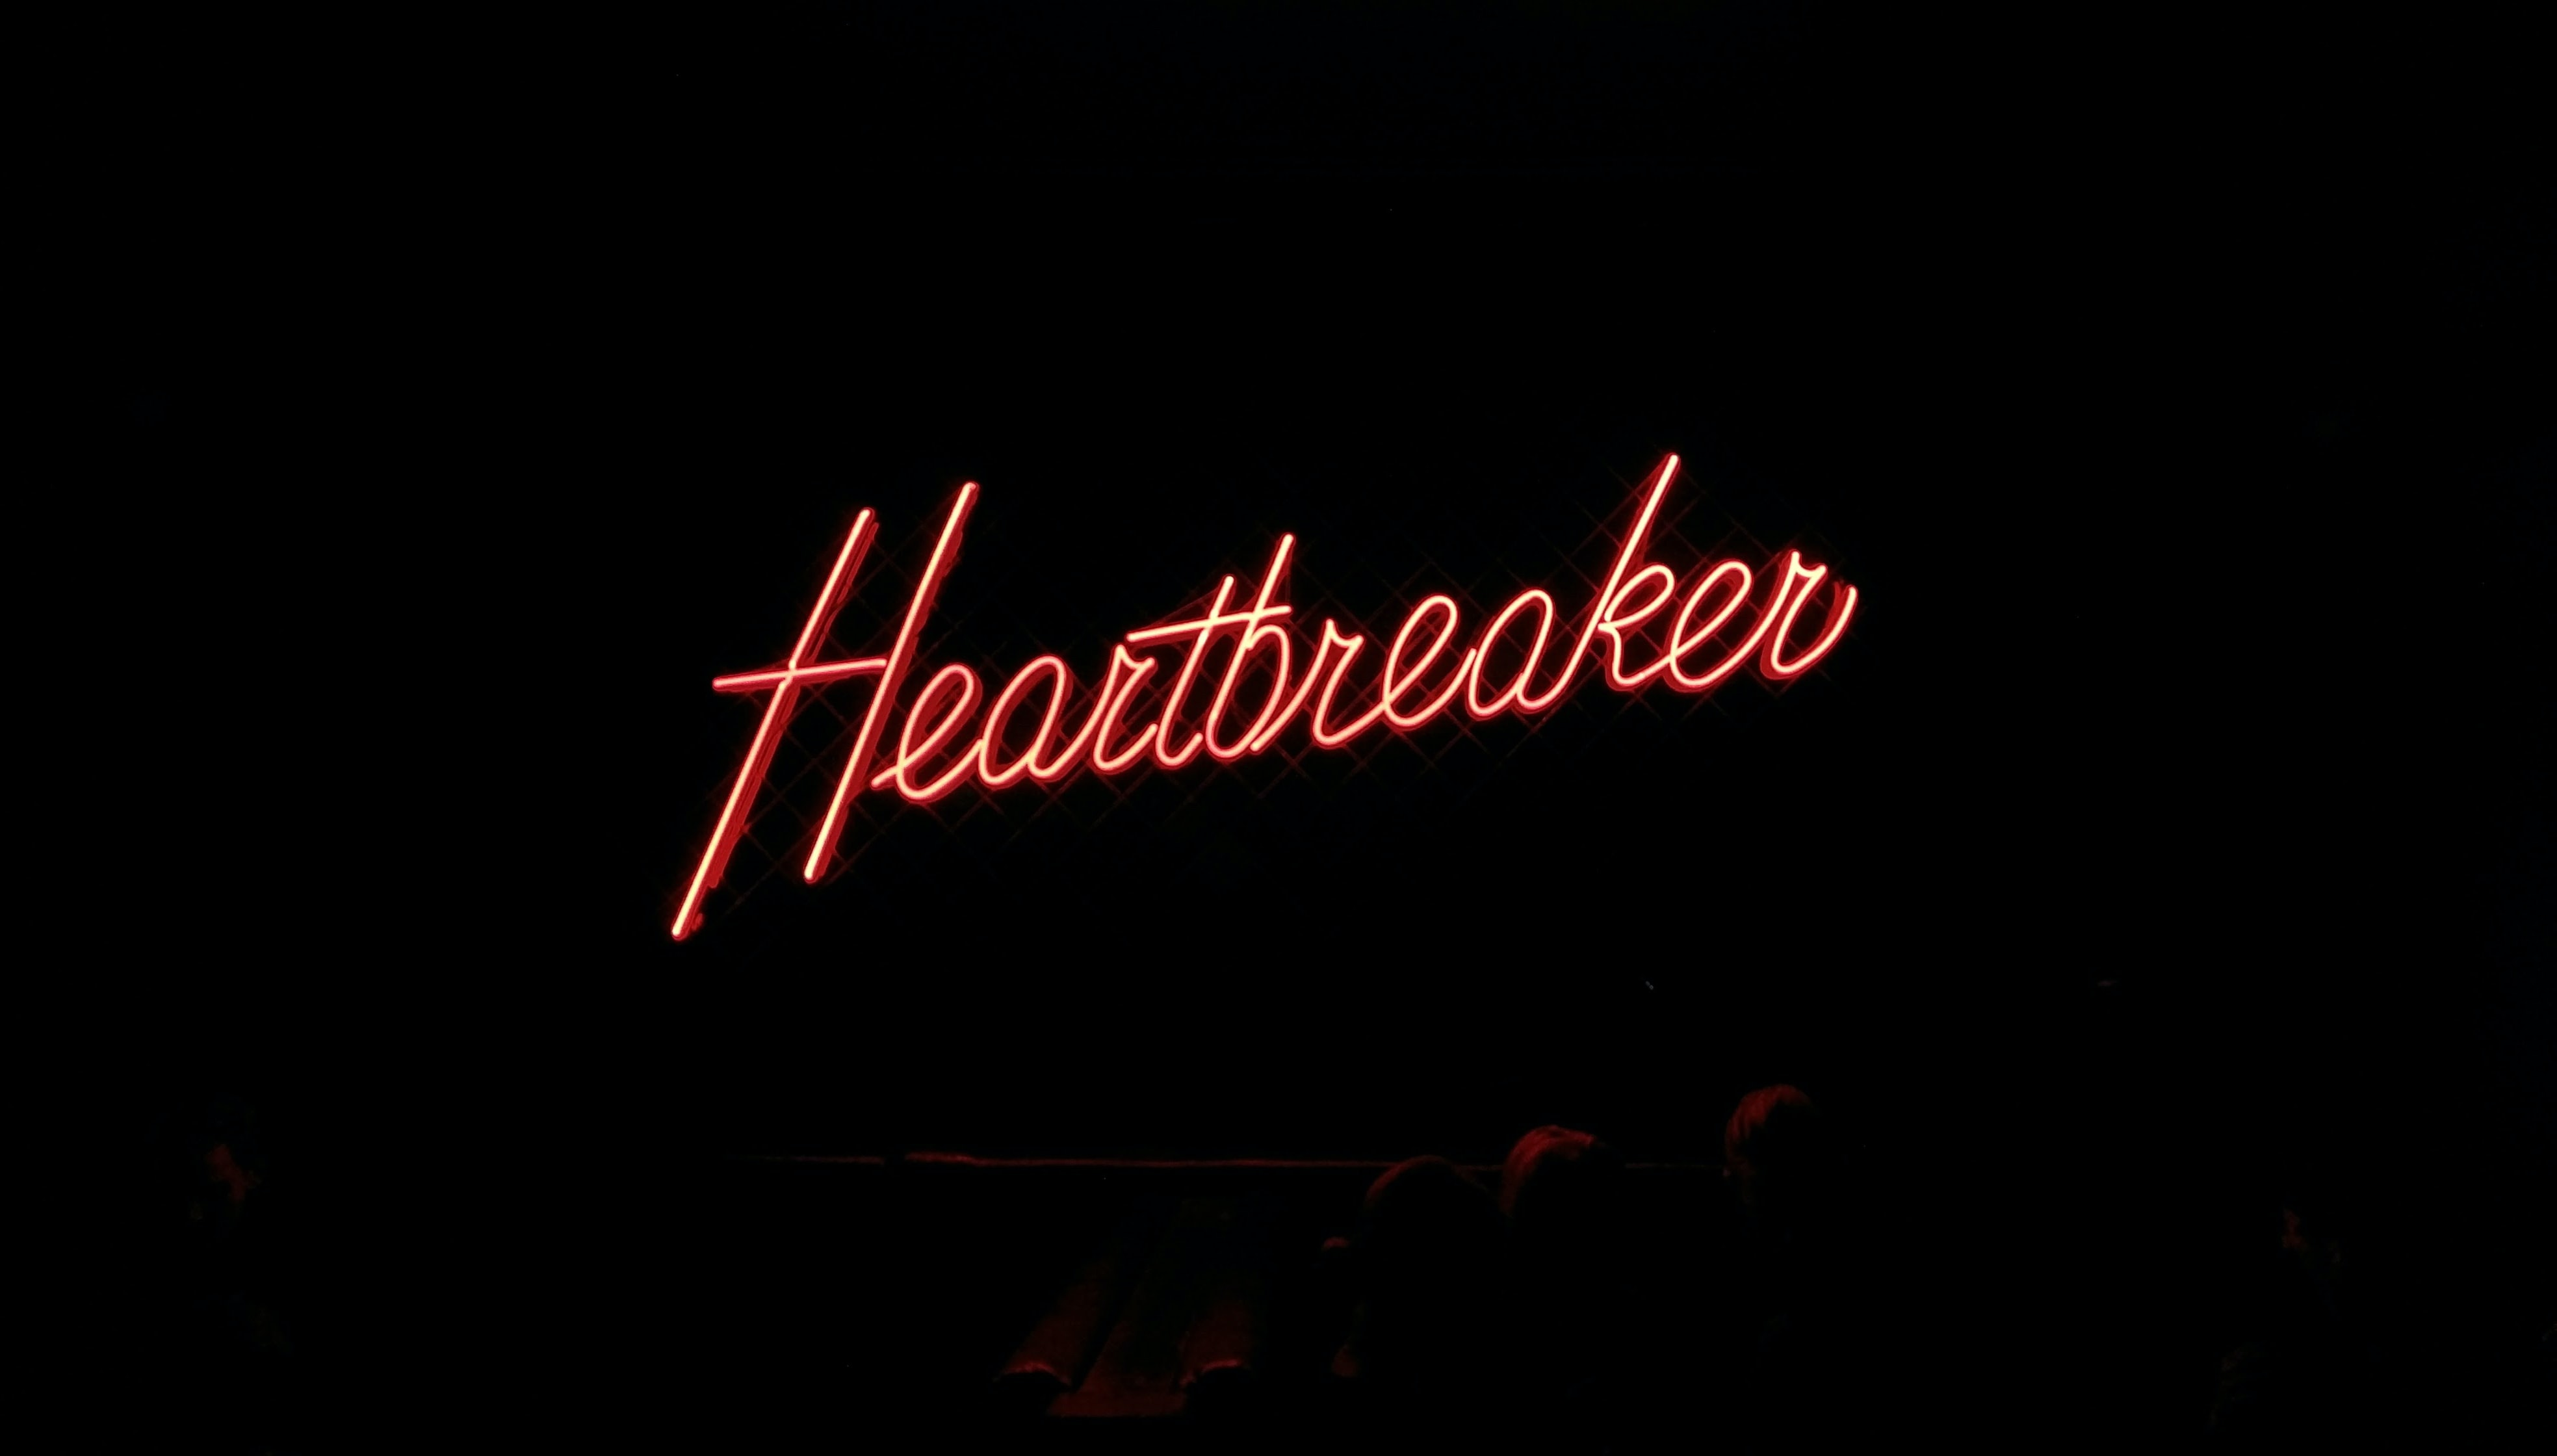 Heartbreaker neon signage on black background